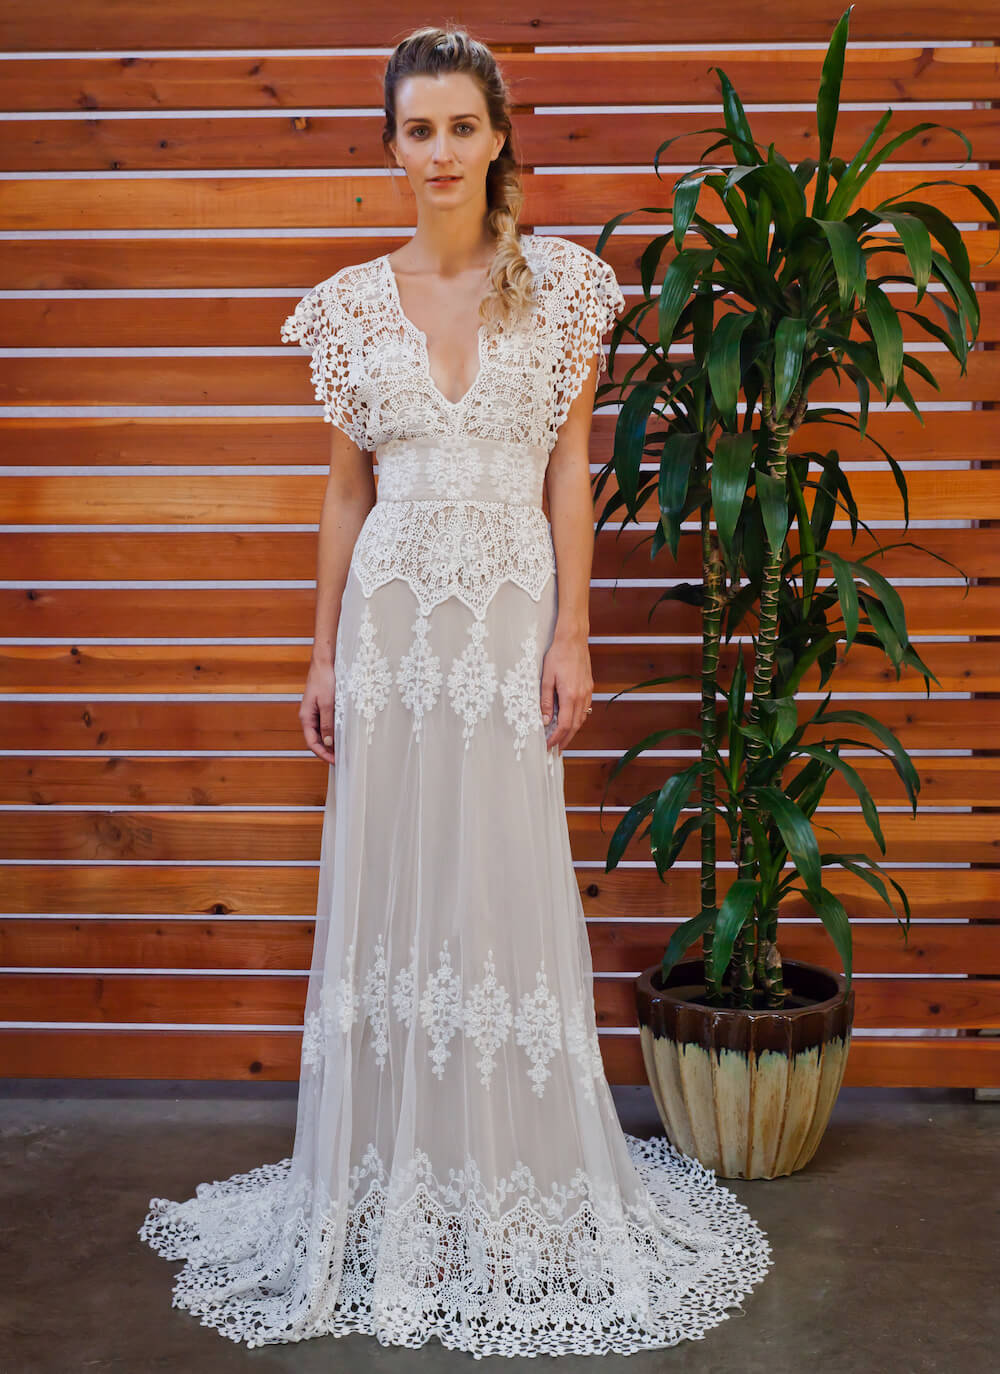 Azalea draped cotton lace wedding dress dreamers and lovers for Bohemian wedding dress shops